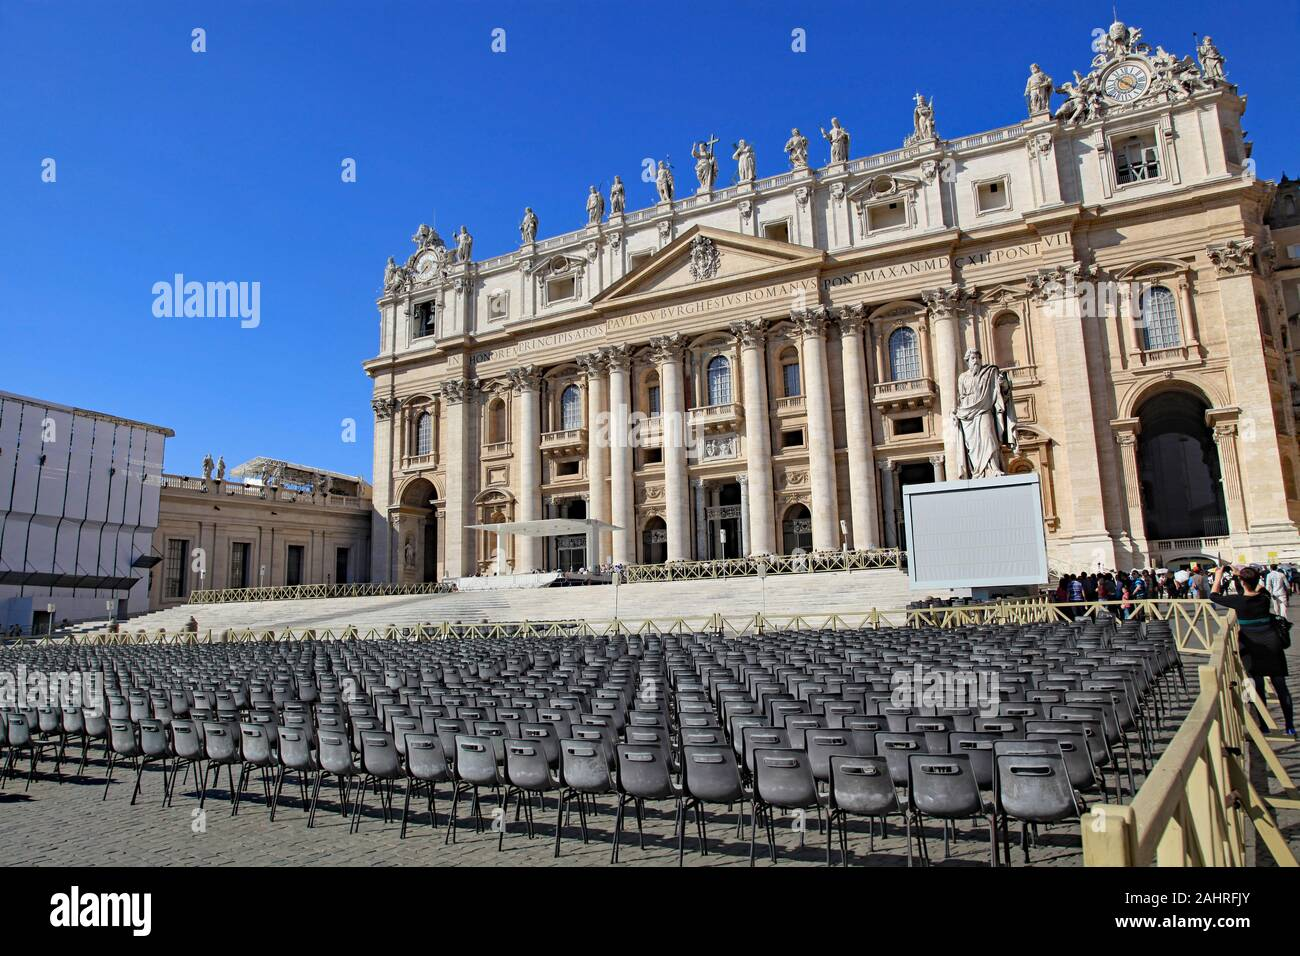 Empty chairs set up for a papal audience in front of St. Peter's Basilica, Vatican City, Rome Stock Photo